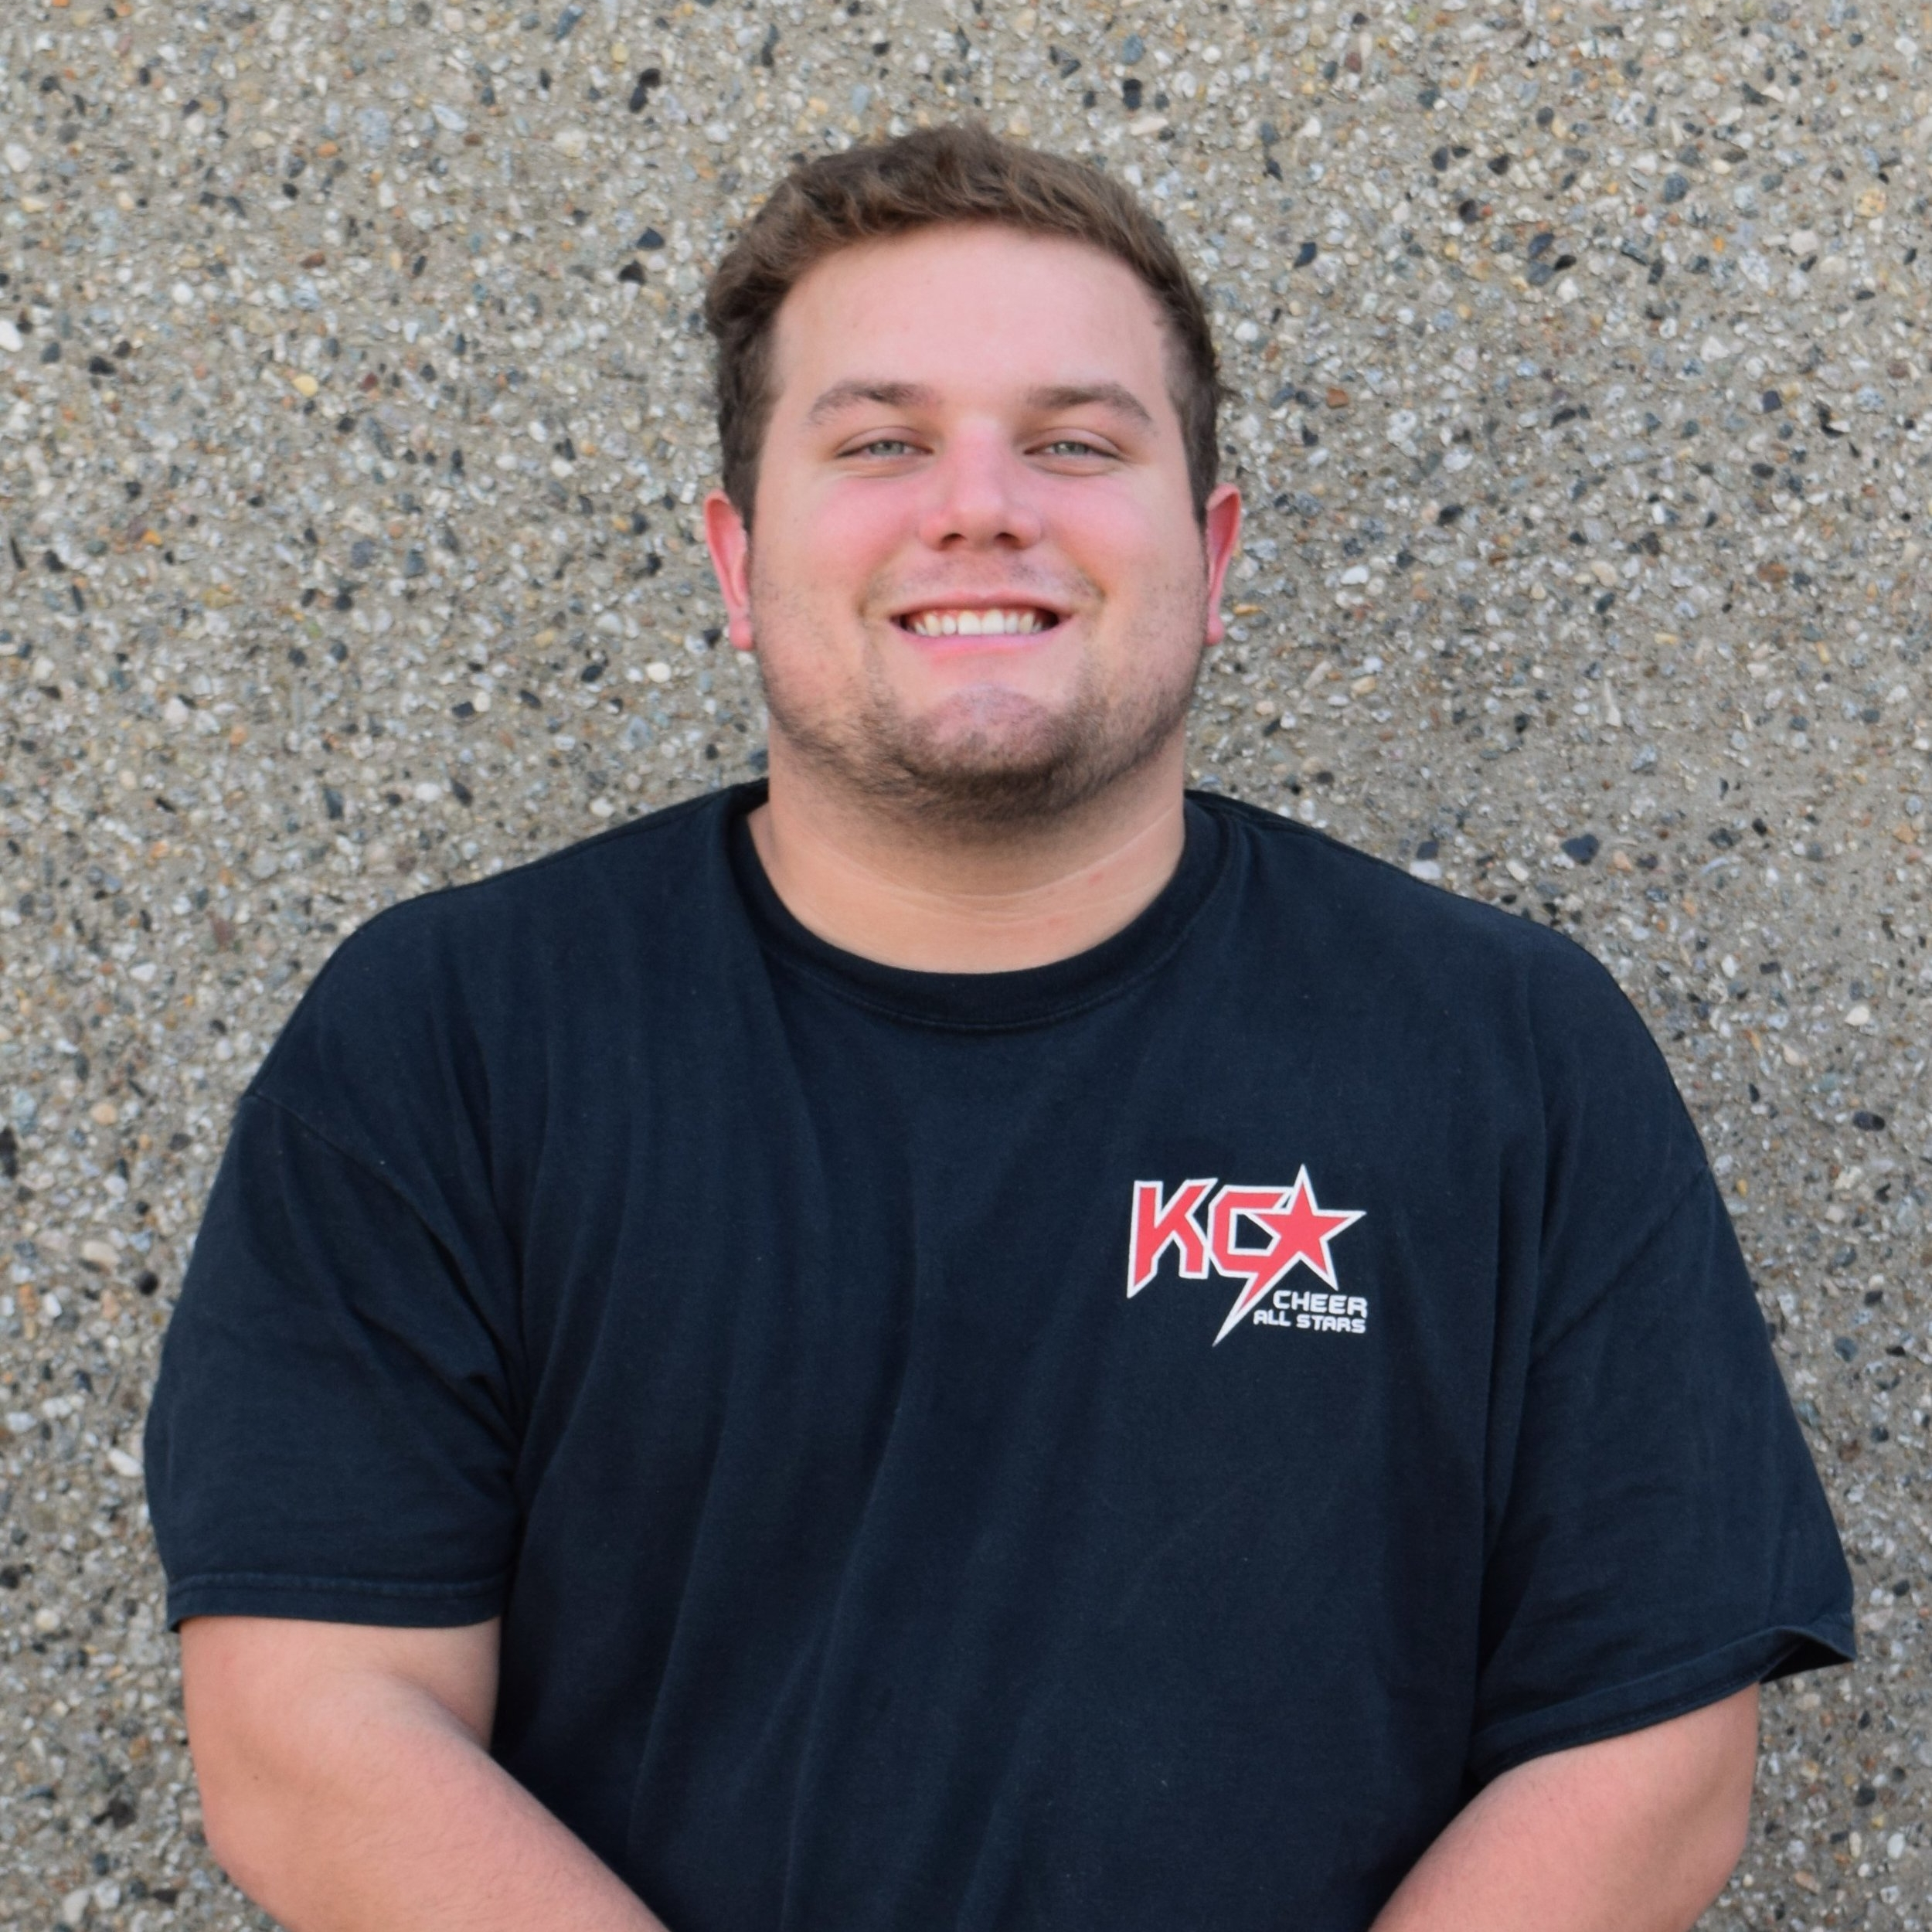 Harrison Whitney  Coach, Tumbling Instructor, Private Lessons  Harrison was an athlete at KC Cheer for 10 years and is starting his third year as a coach this season. He was on Fierce 5 for six years, where he led the team to a fourth place finish at The Cheerleading Worlds in 2014 and 5th place in 2015. Last year Harrison coached Fantasy and Ferocious, who both competed at the Summit at the end of the year. Harrison is a student at KU, and is available for private lessons.  Contact Harrison